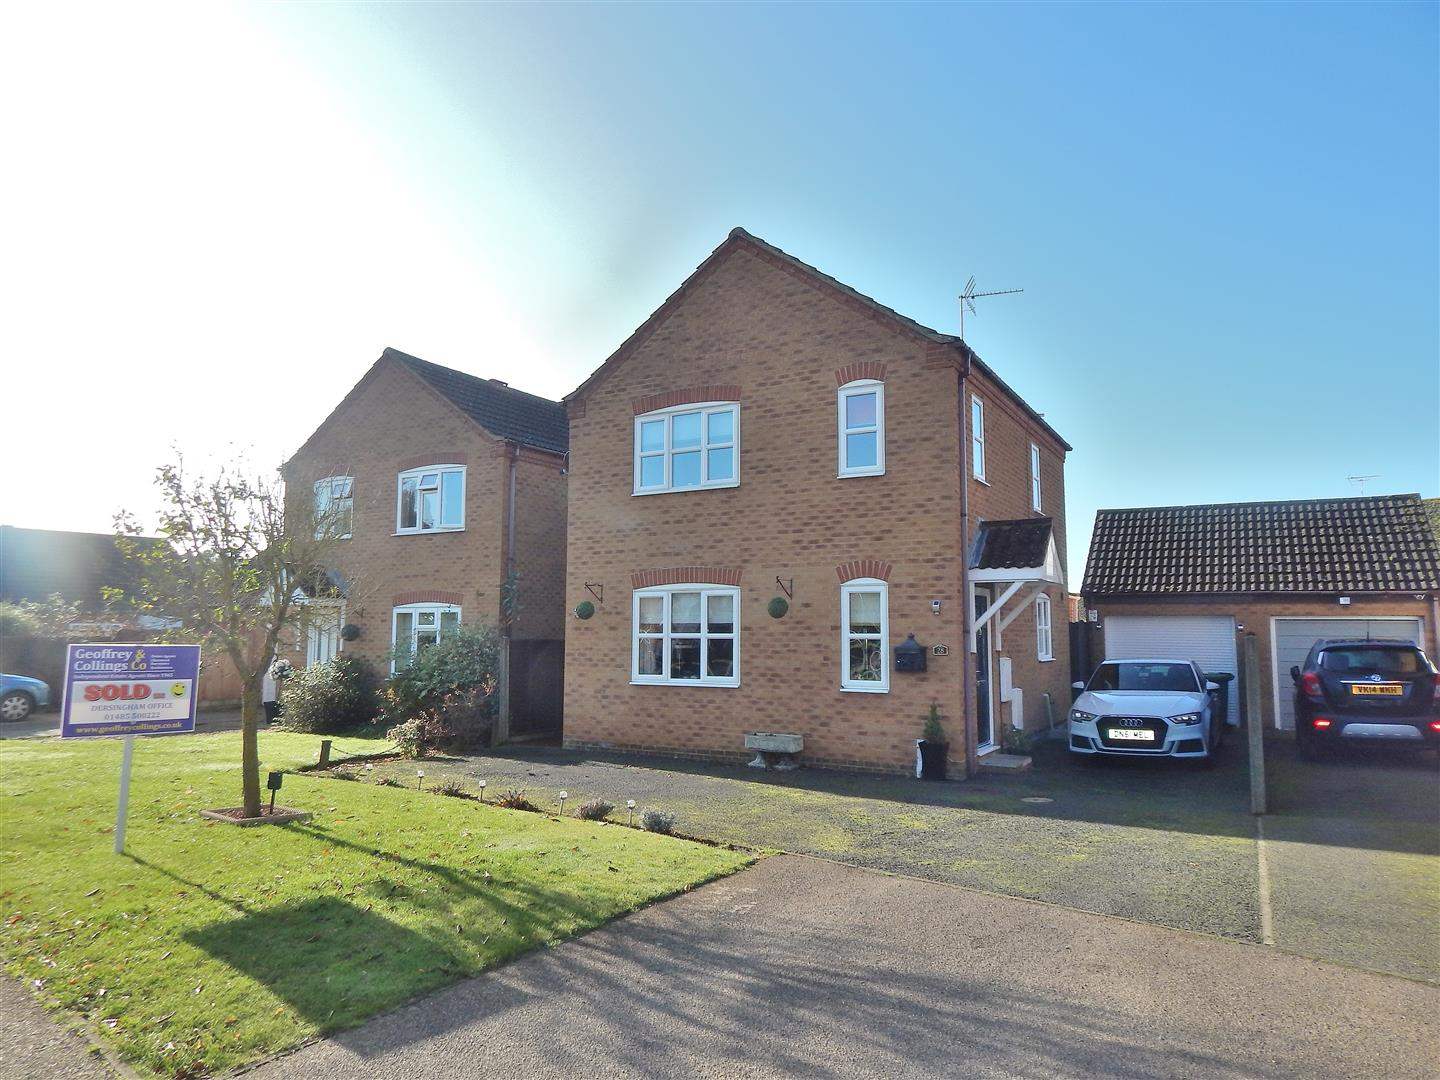 3 bed detached house for sale in King's Lynn, PE31 6XX  - Property Image 1